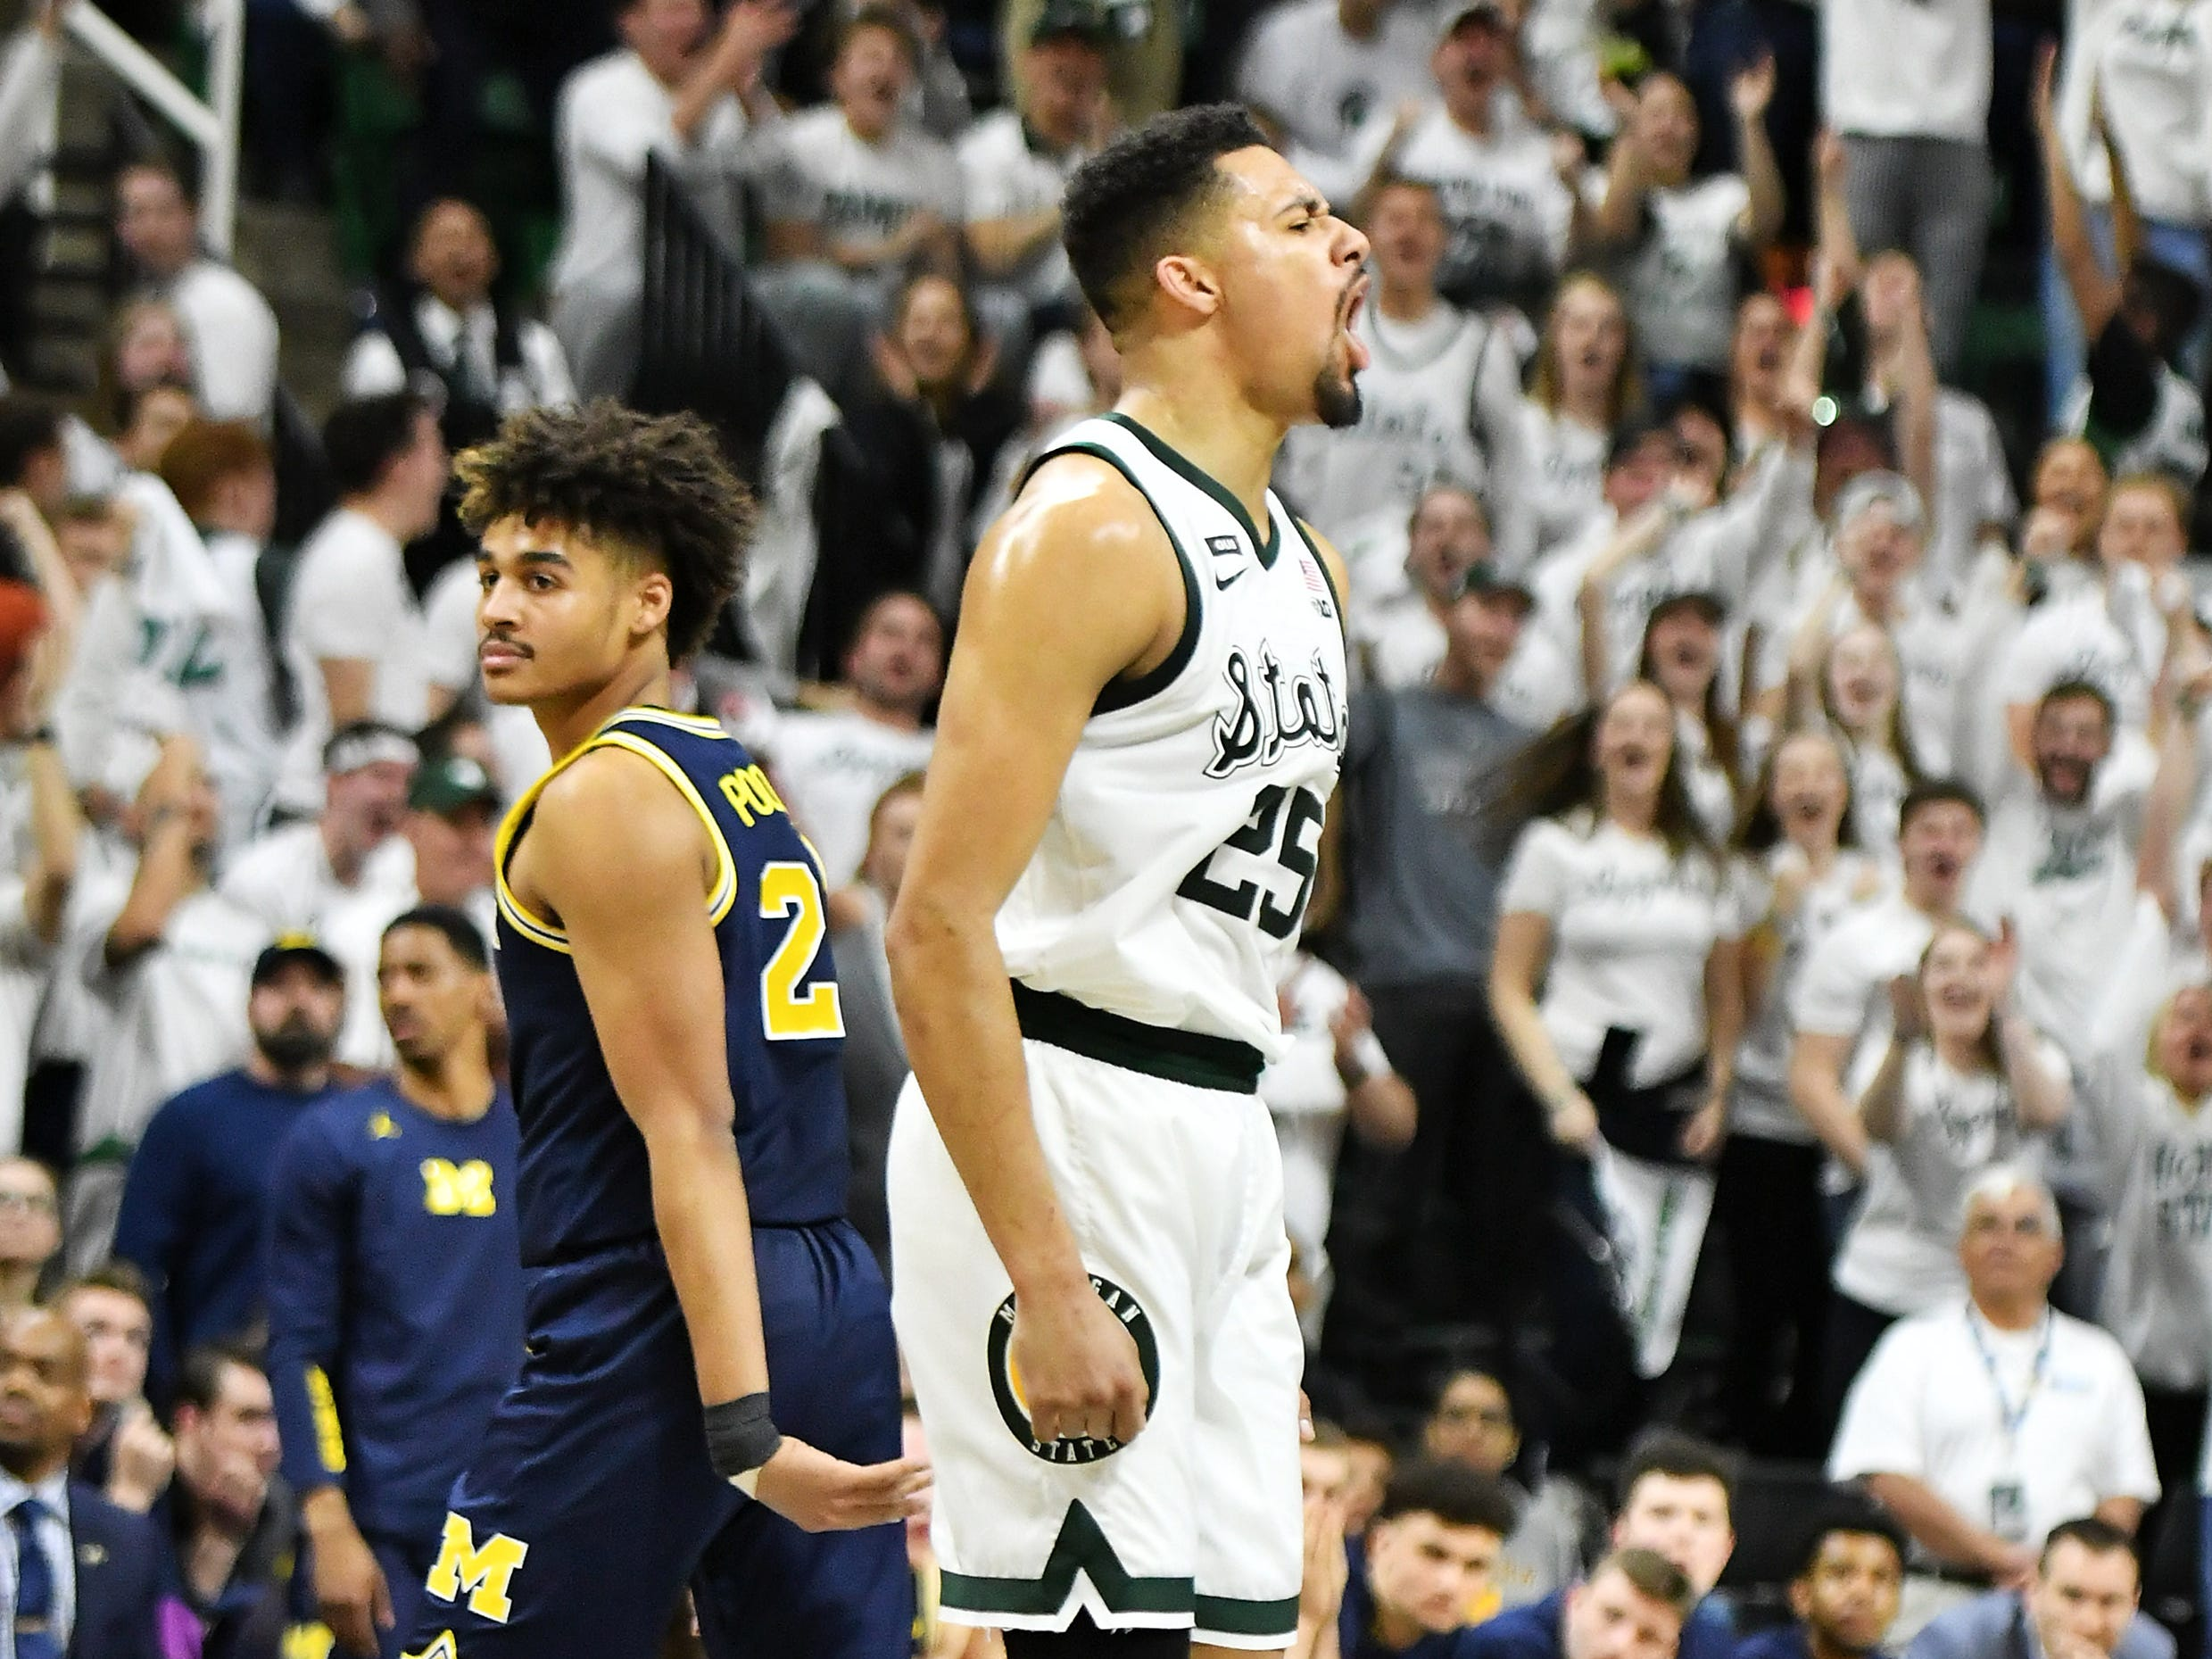 Michigan State forward Kenny Goins (25) reacts after he hits a shot in the second half.